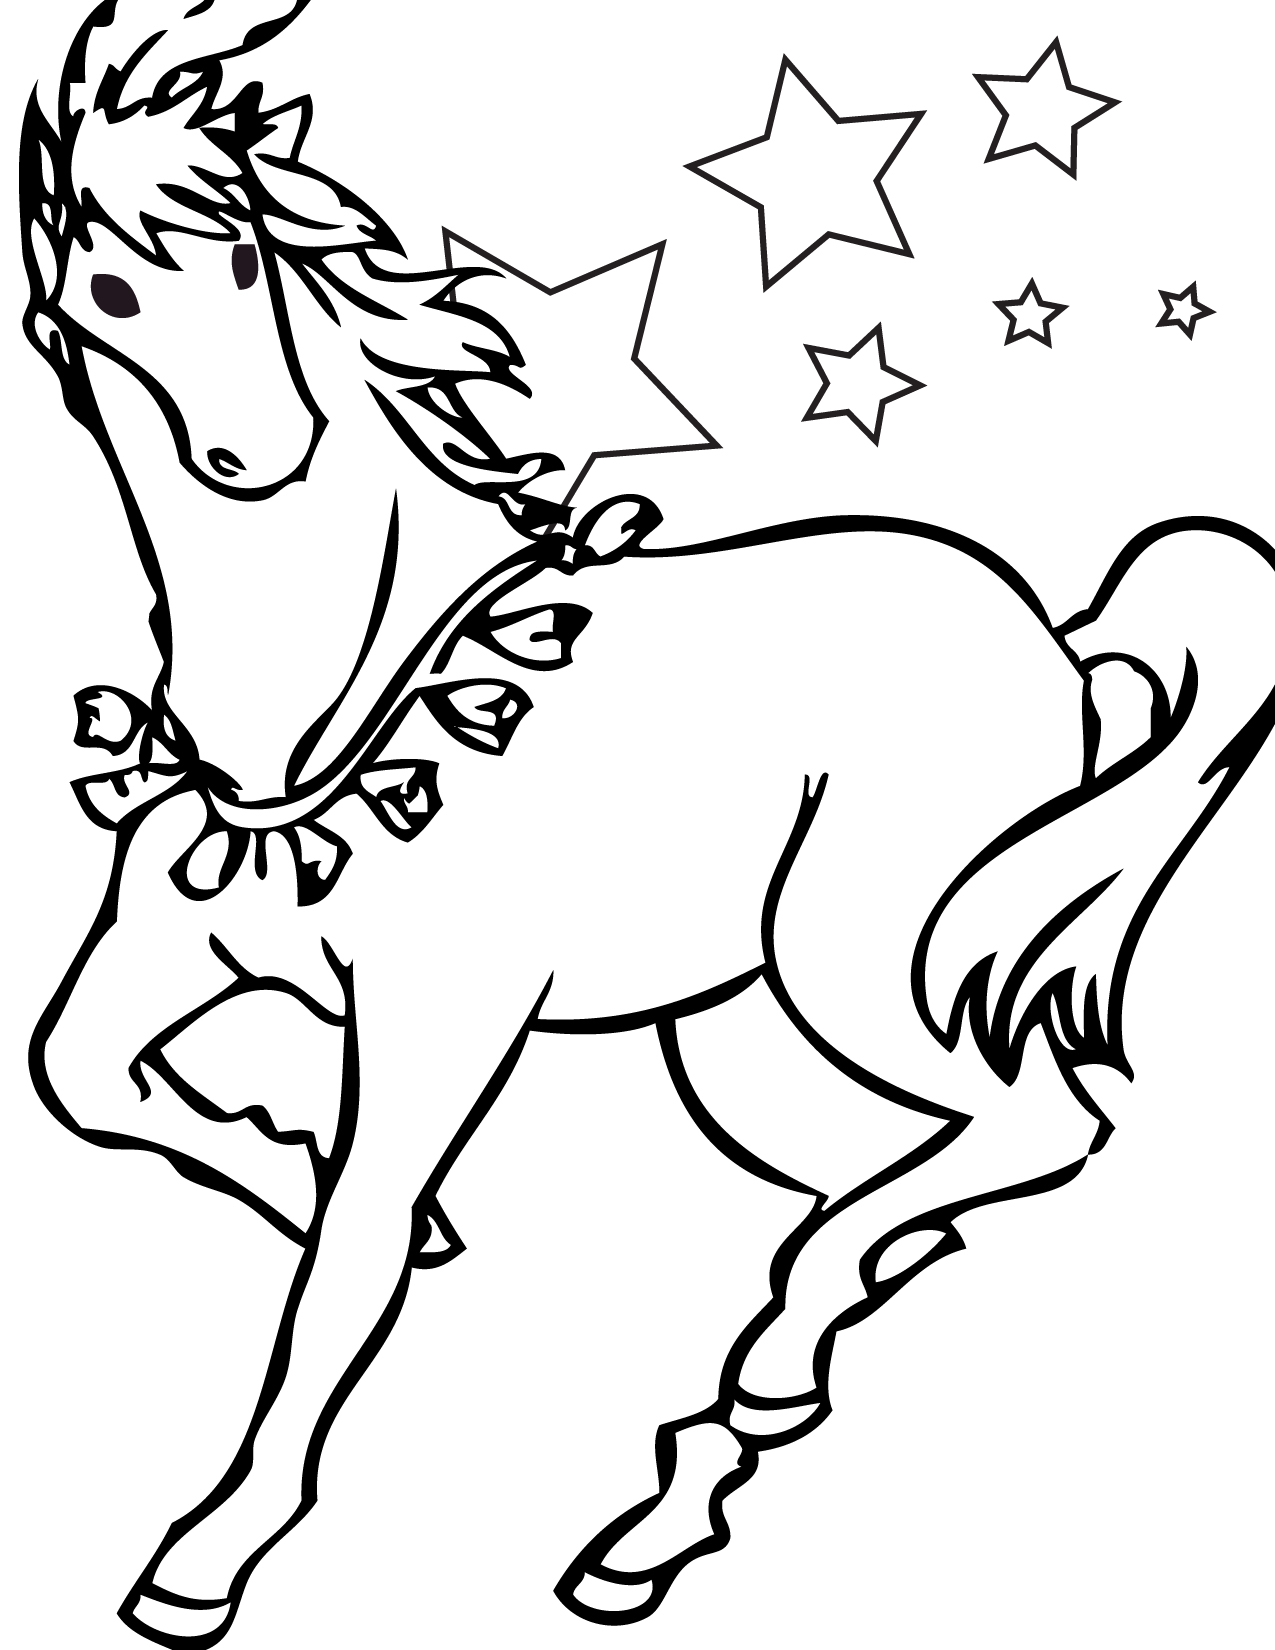 1275x1650 Free Printable Horse Coloring Pages For Kids Coloring Pages